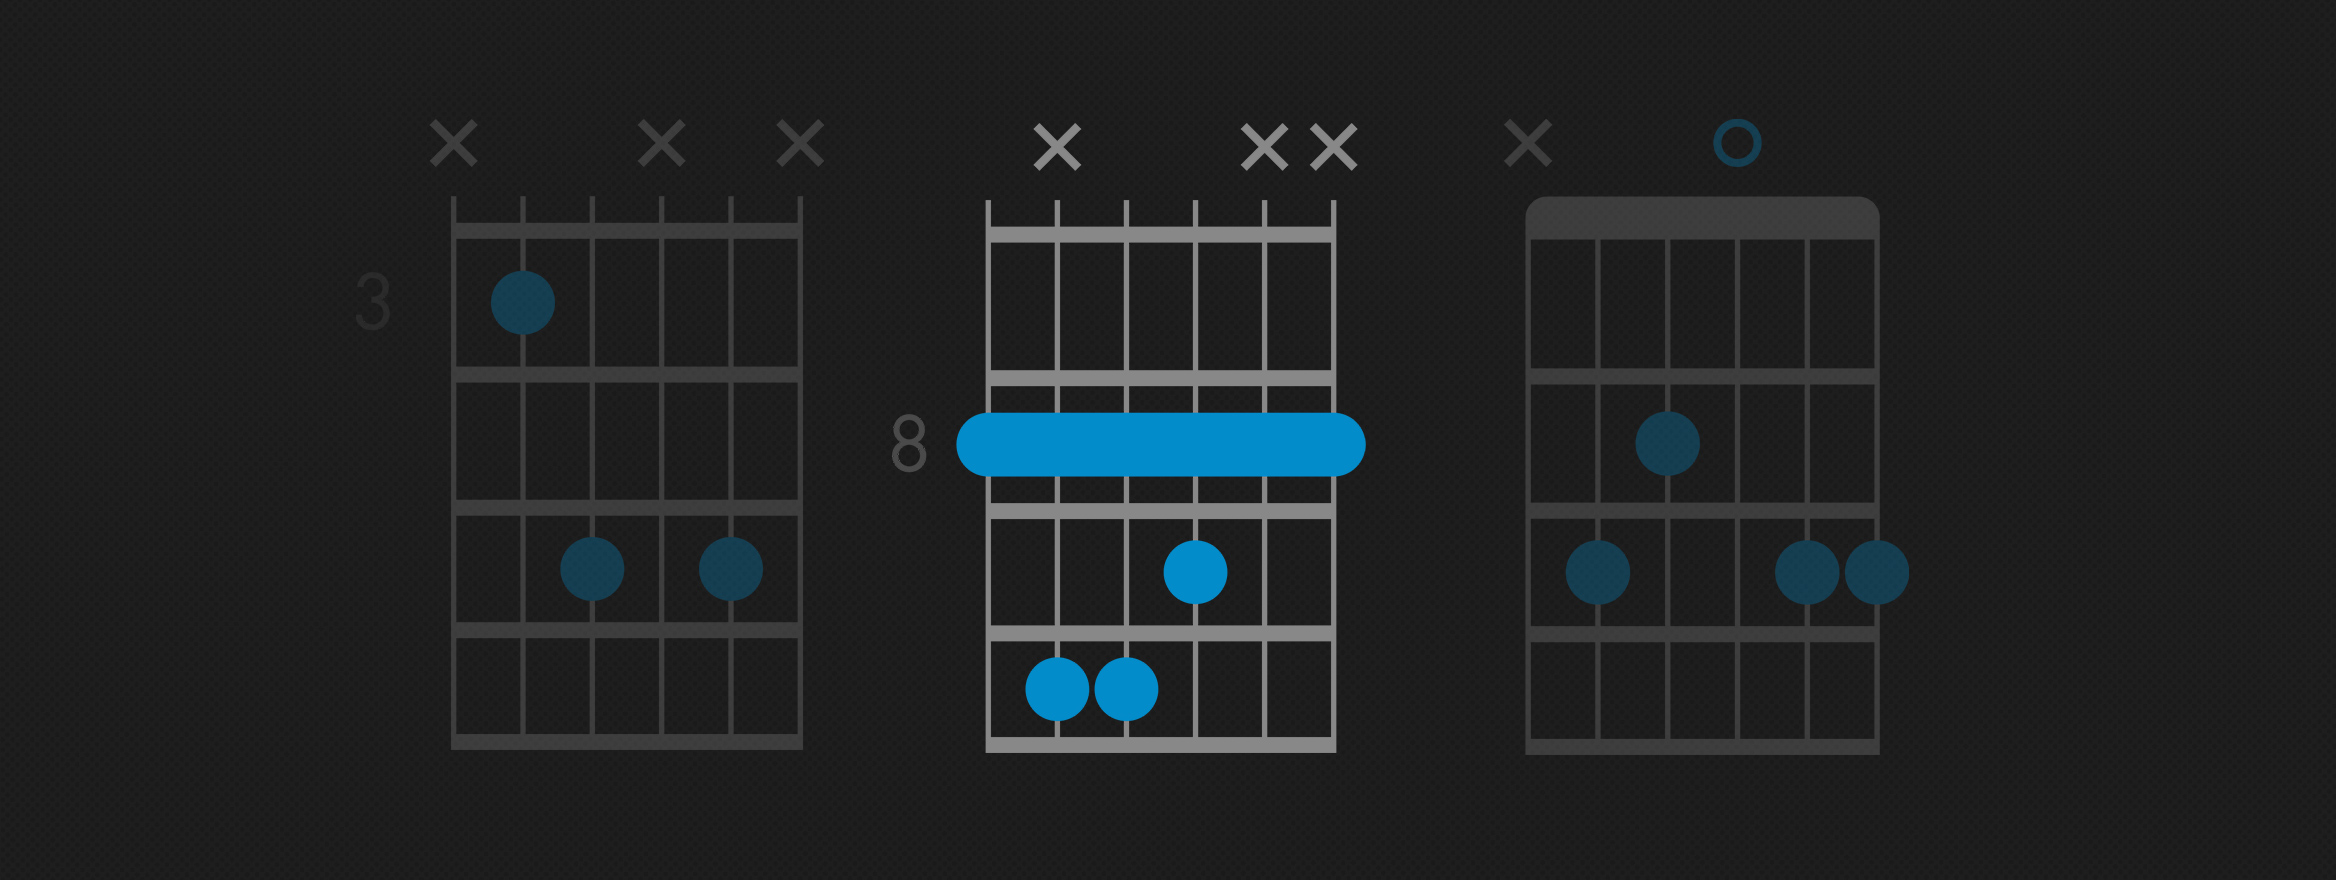 How to Play C Chord on Guitar   C Major Guitar Chord   Fender Play